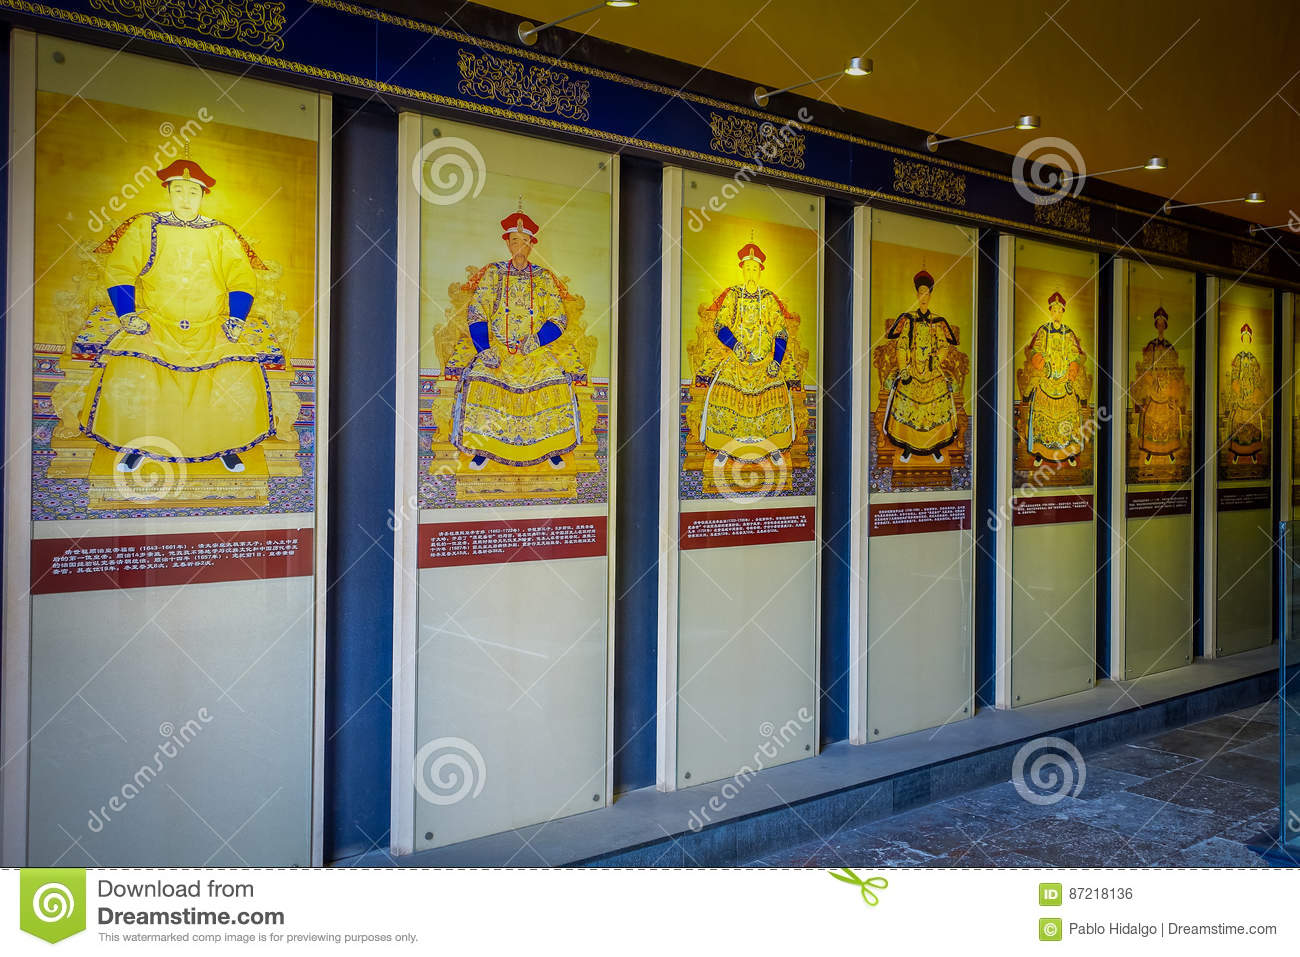 BEIJING, CHINA - 29 JANUARY, 2017: Decorated Walls Showing Ancient ...